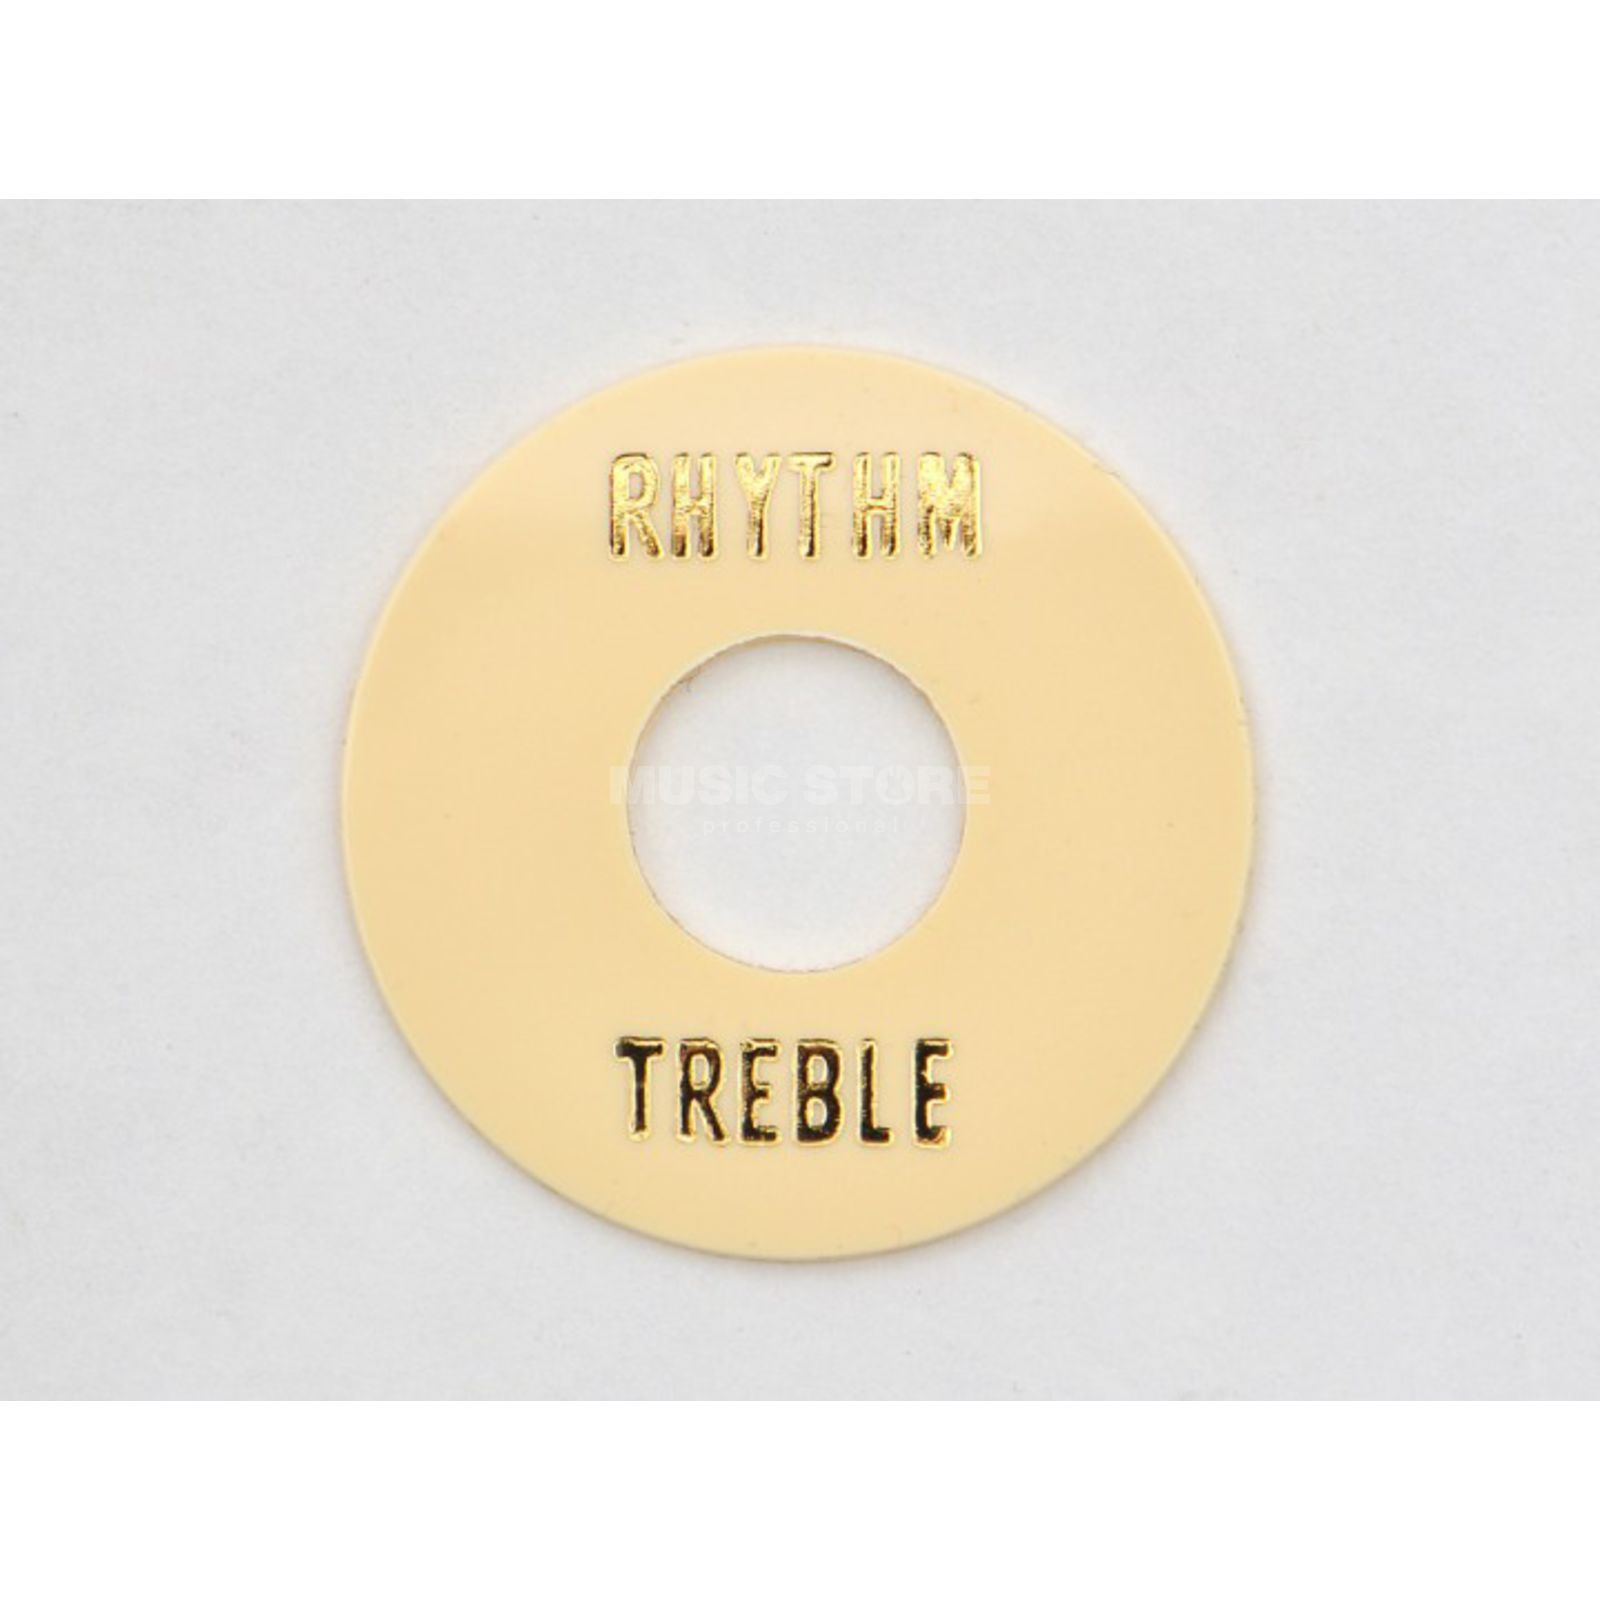 Göldo Switch Washer Singlecut Treble/Rhythm, Creme Produktbild